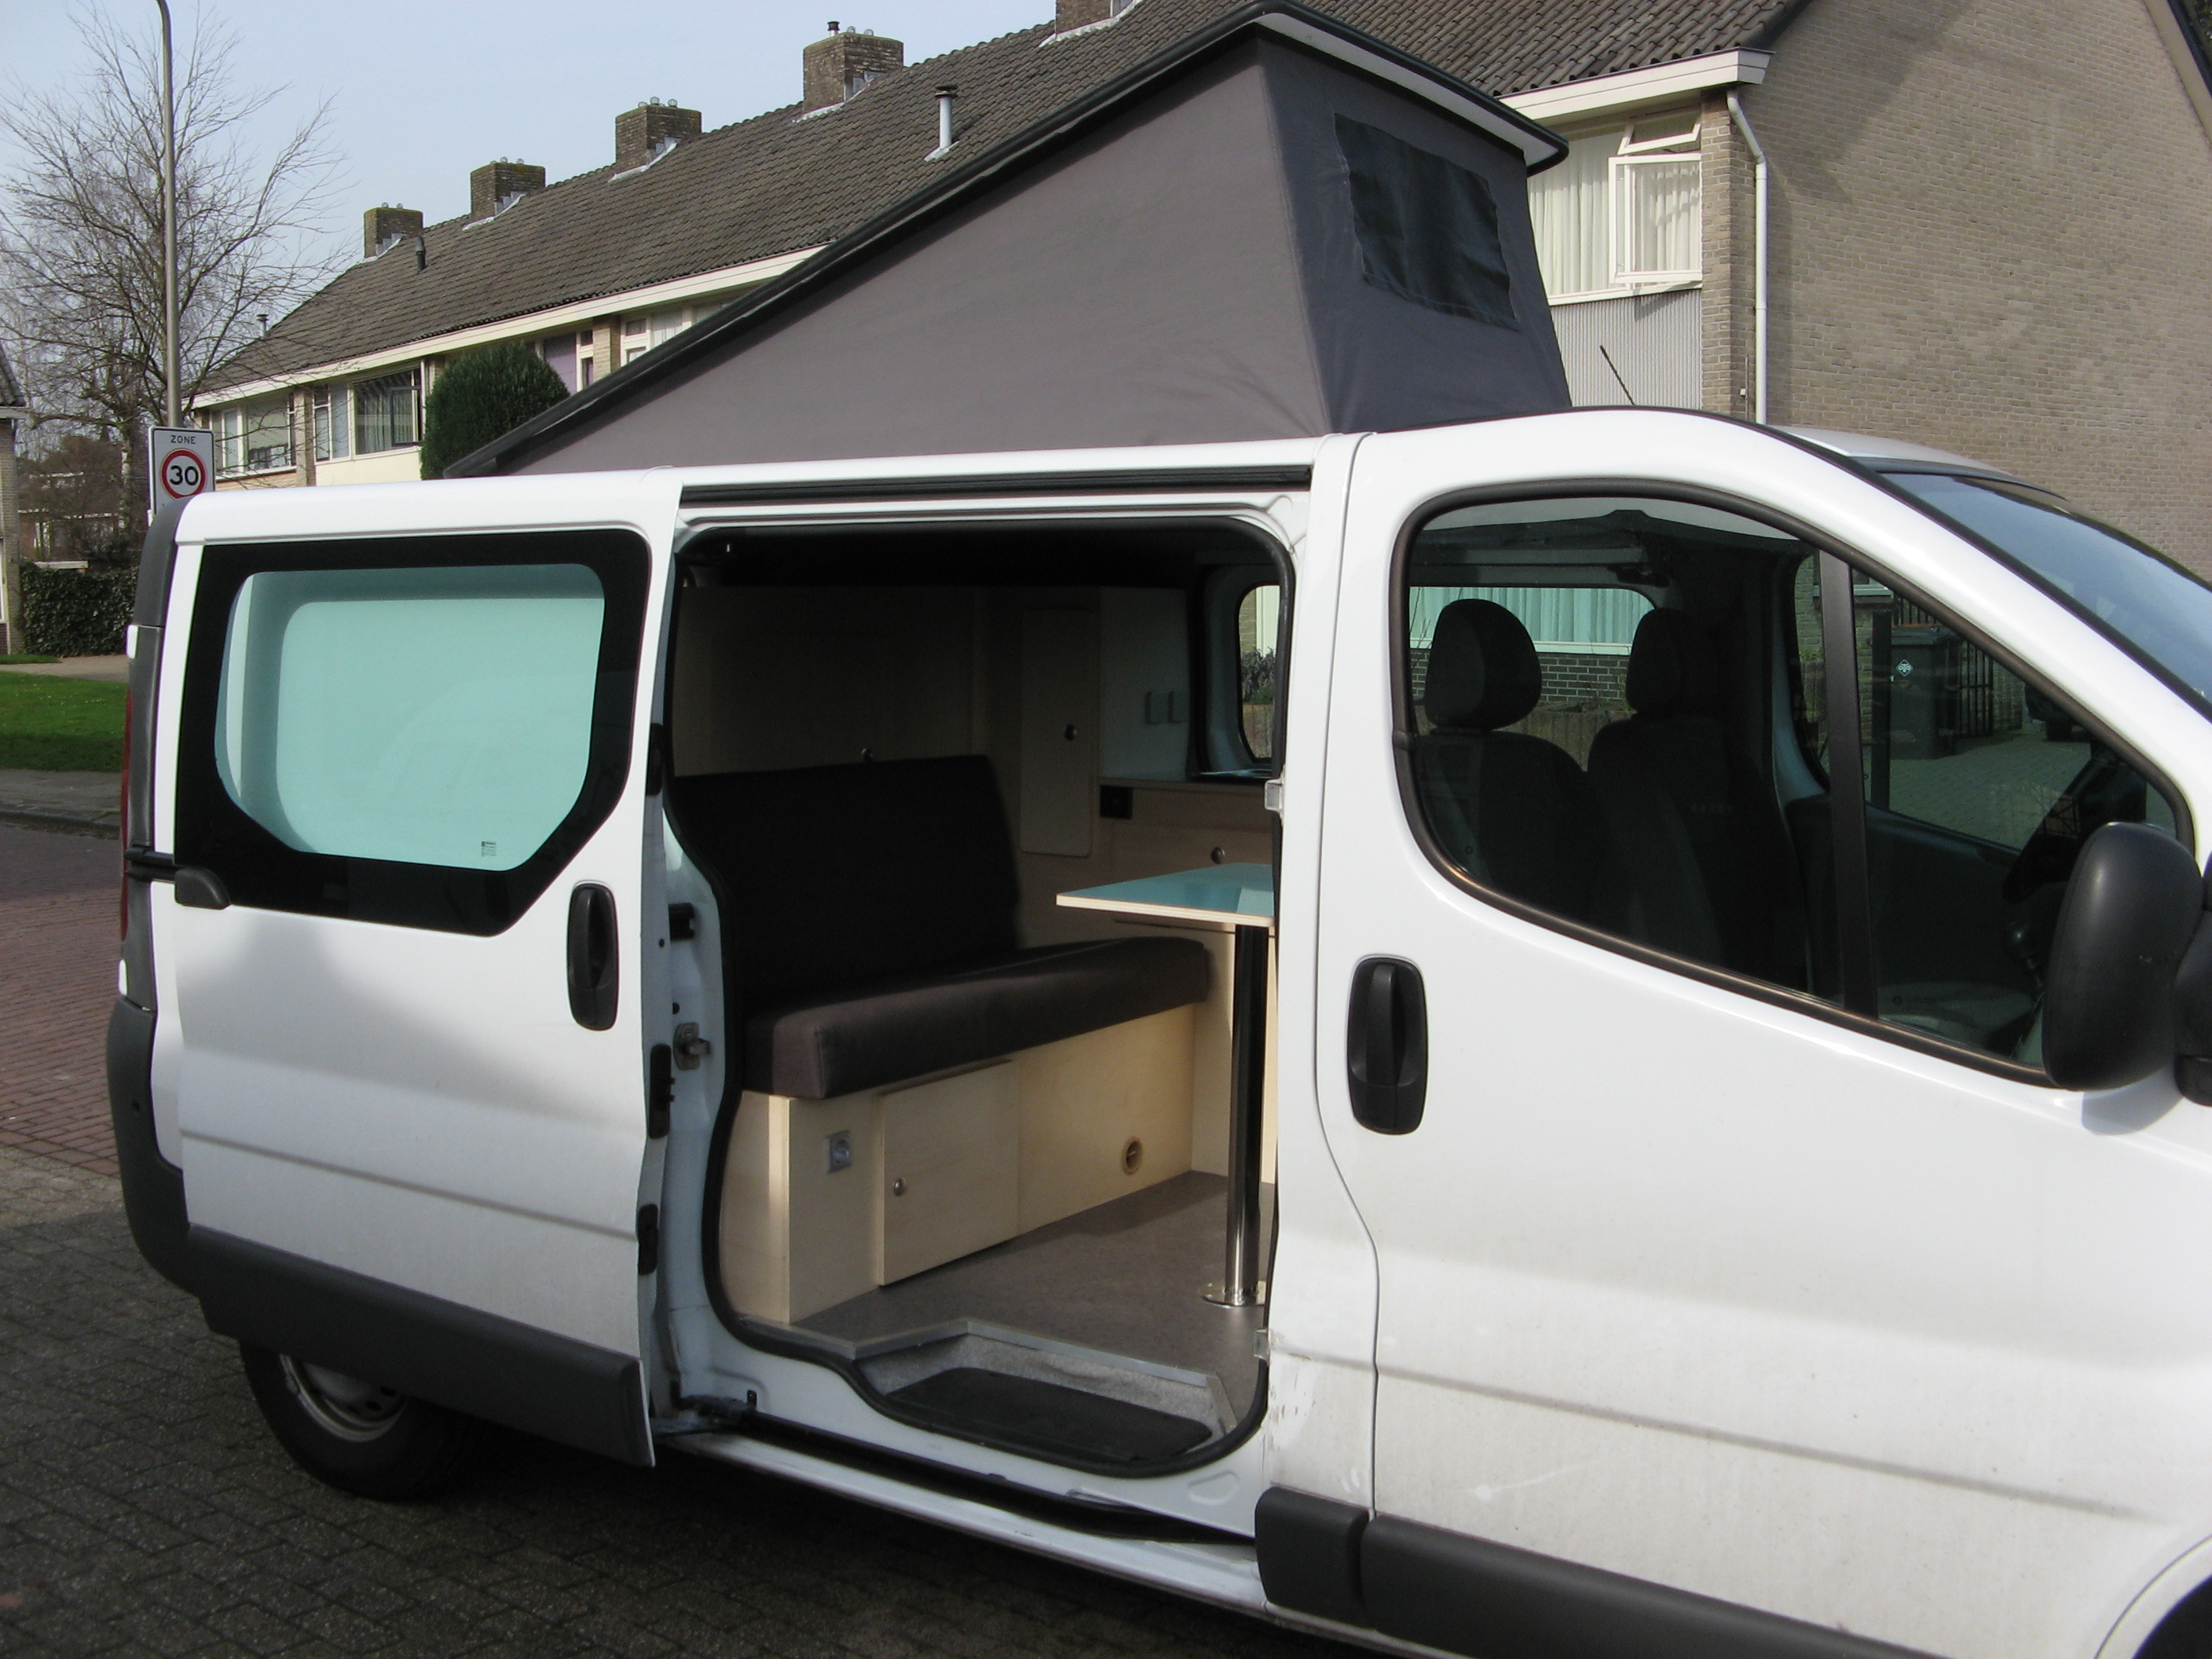 opel vivaro l2 h1 uw camper op maat. Black Bedroom Furniture Sets. Home Design Ideas